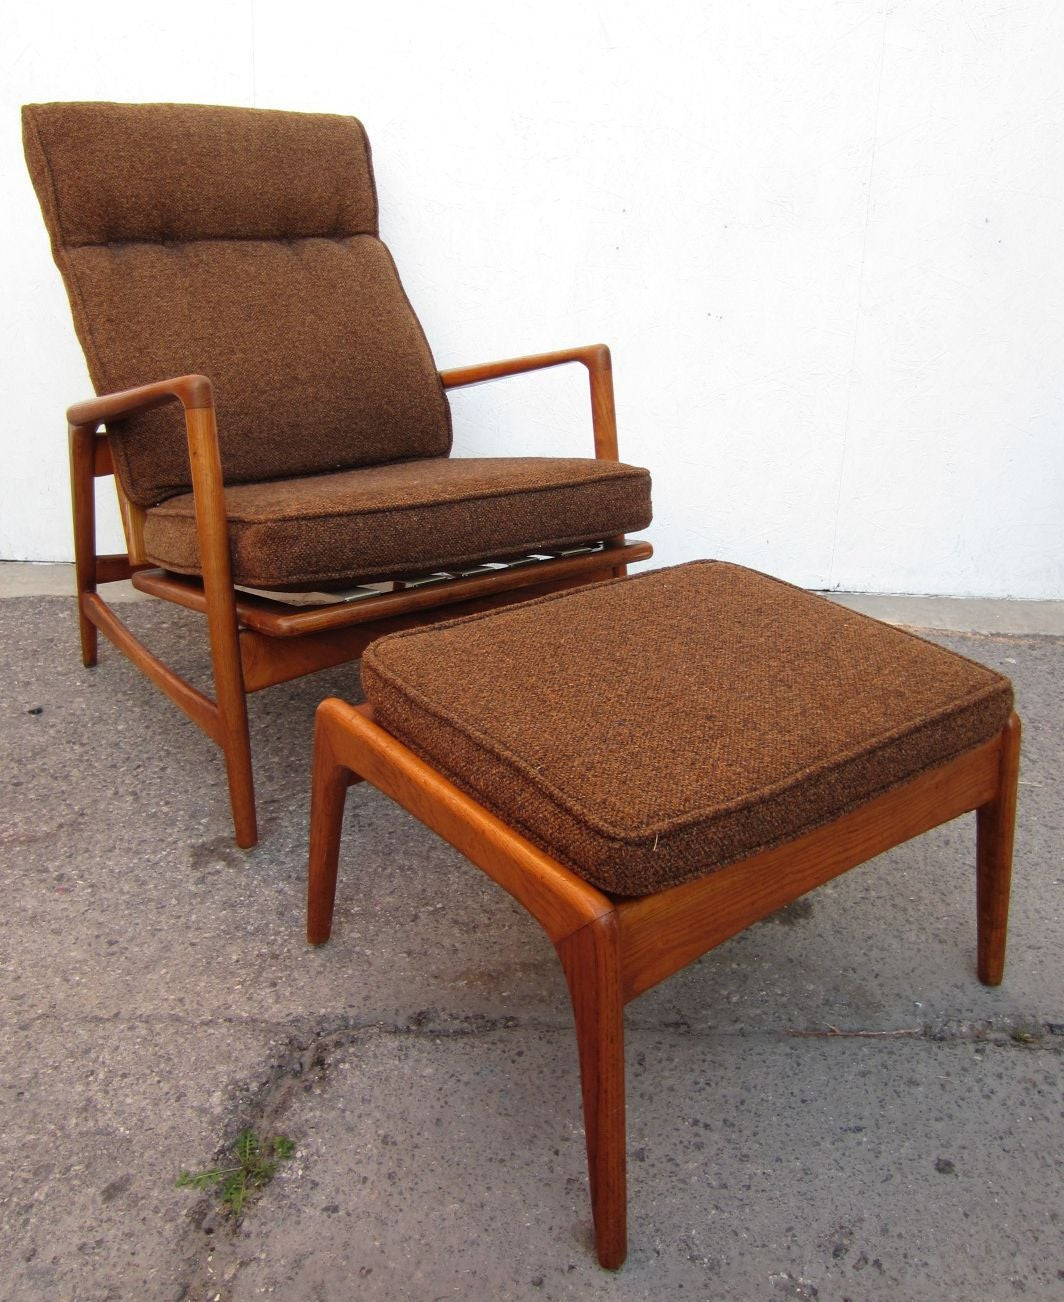 Mid Century Chair And Ottoman 1950 Danish Mid Century Modern Lounge Chair And Ottoman